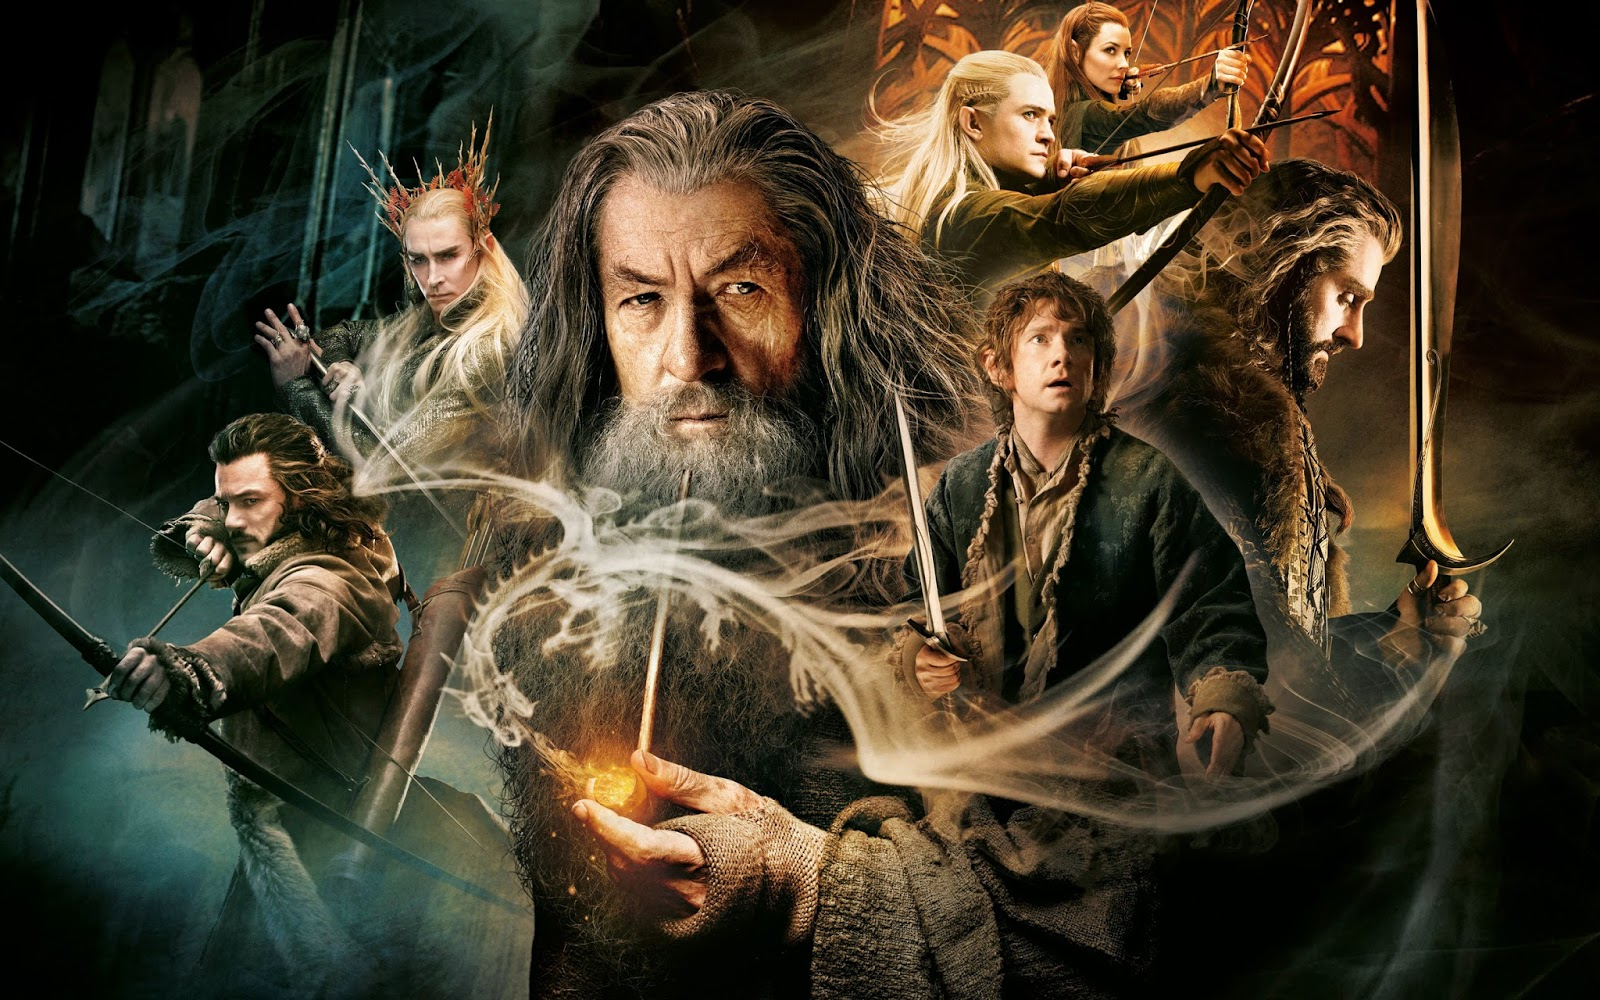 Hax sharing **==--: the hobbit the desolation of smaug (2013) 720p.